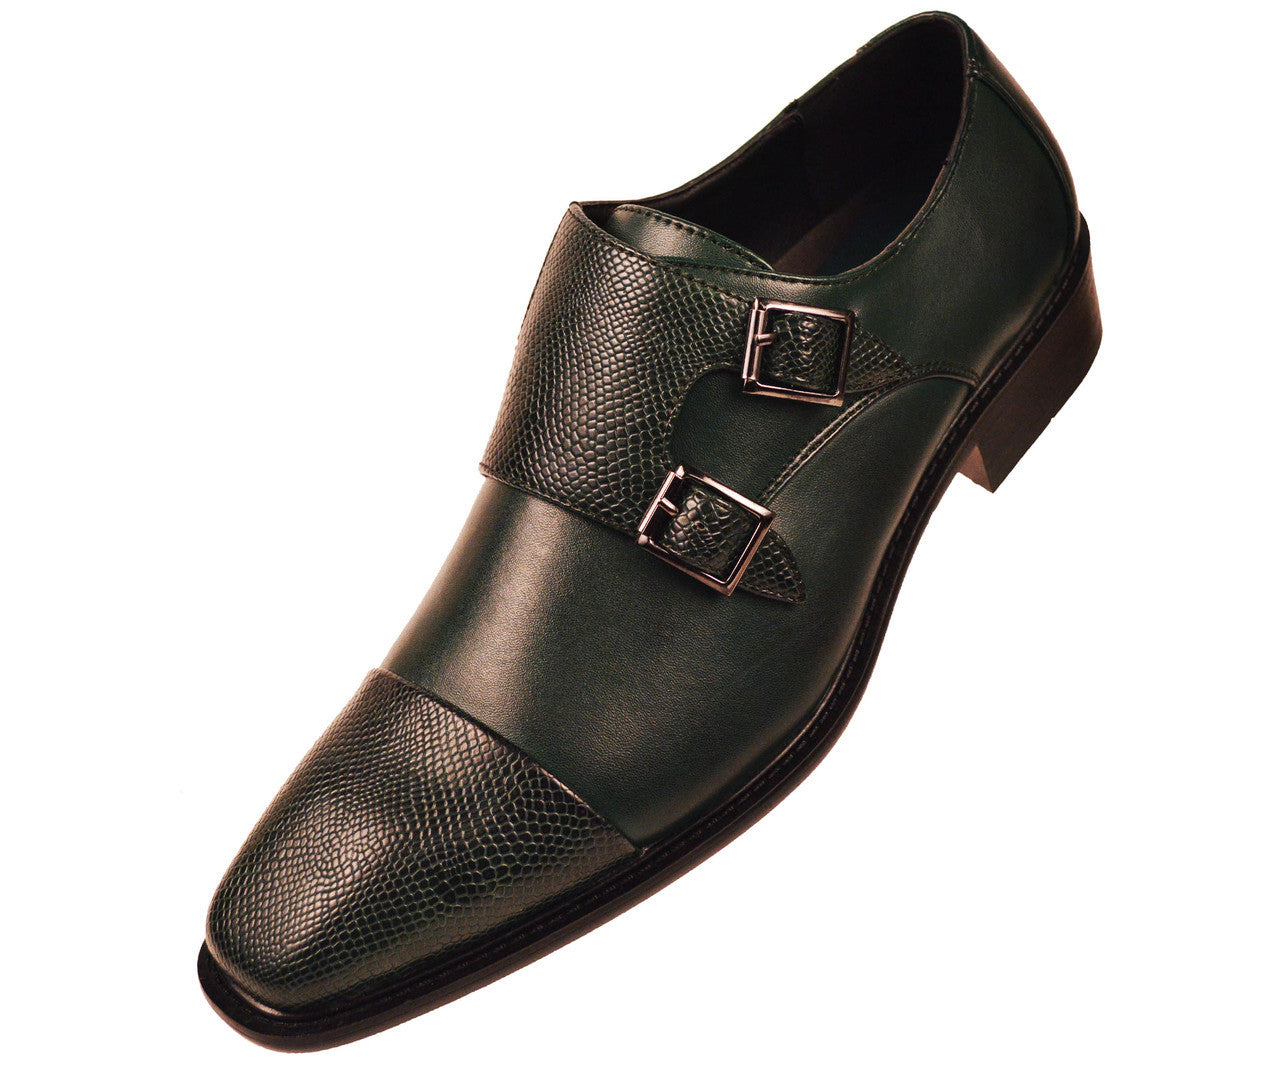 Men Shoes Bancroft-015-HunterGreen - Church Suits For Less